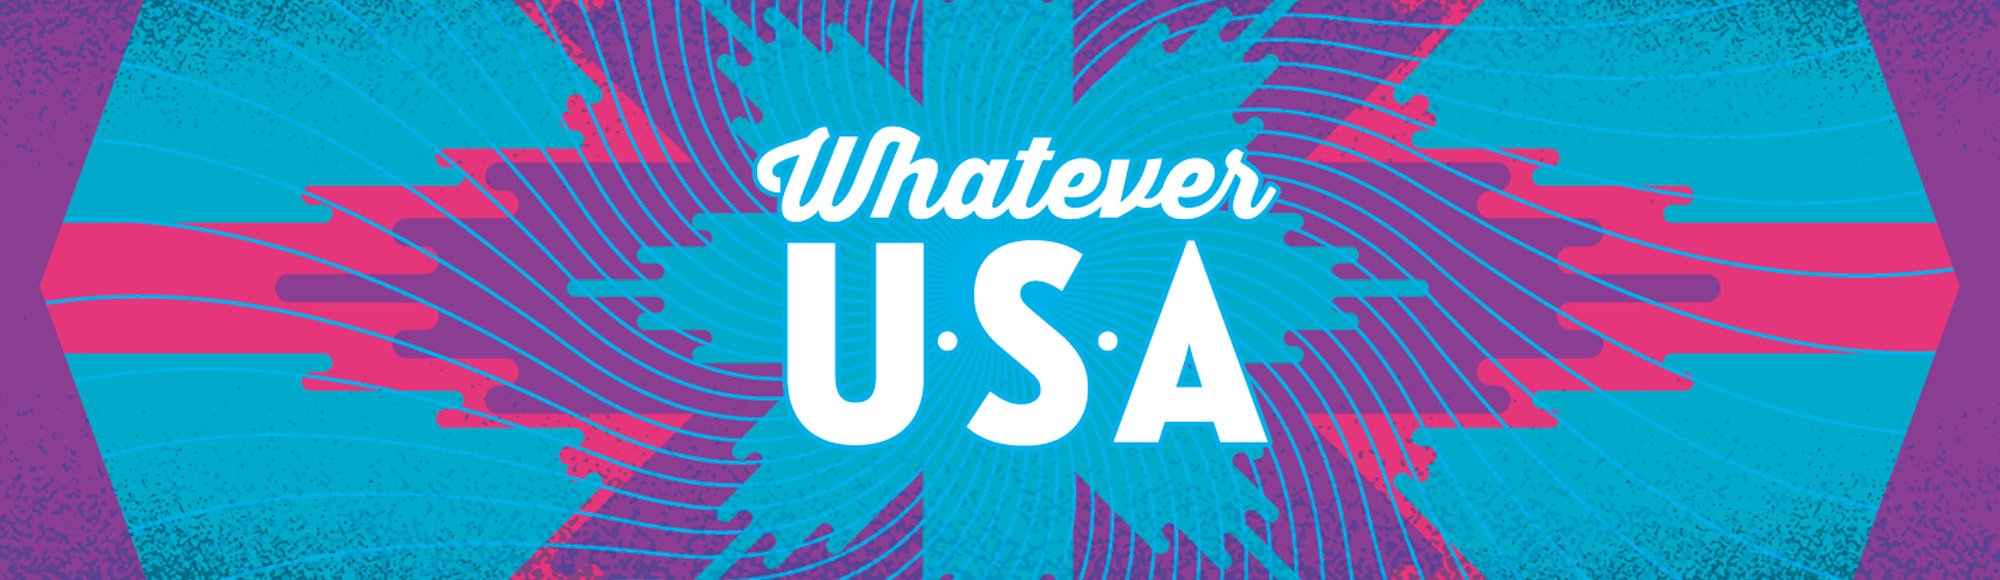 Whatever USA